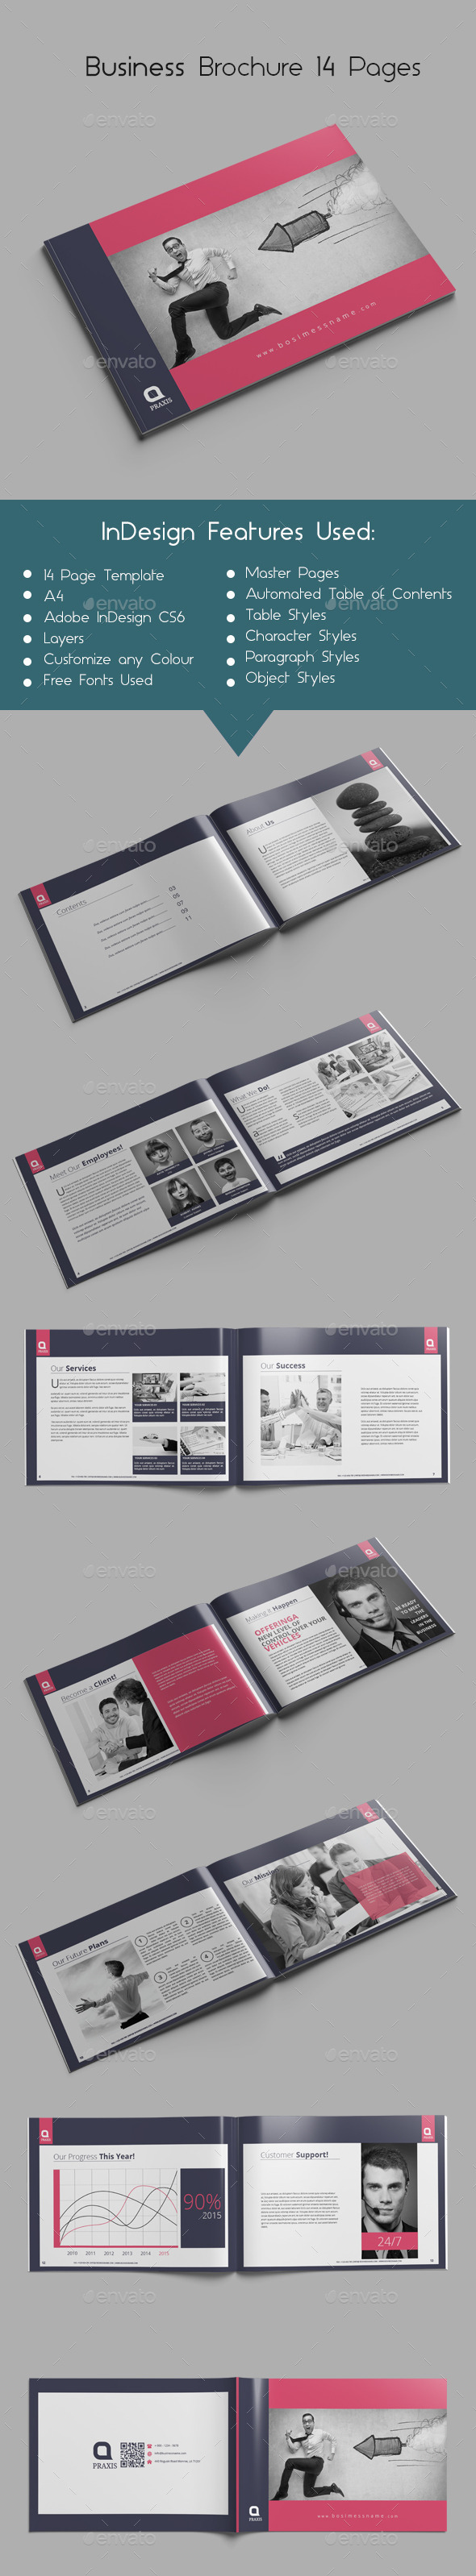 Business Brochure 14 Pages - Corporate Brochures